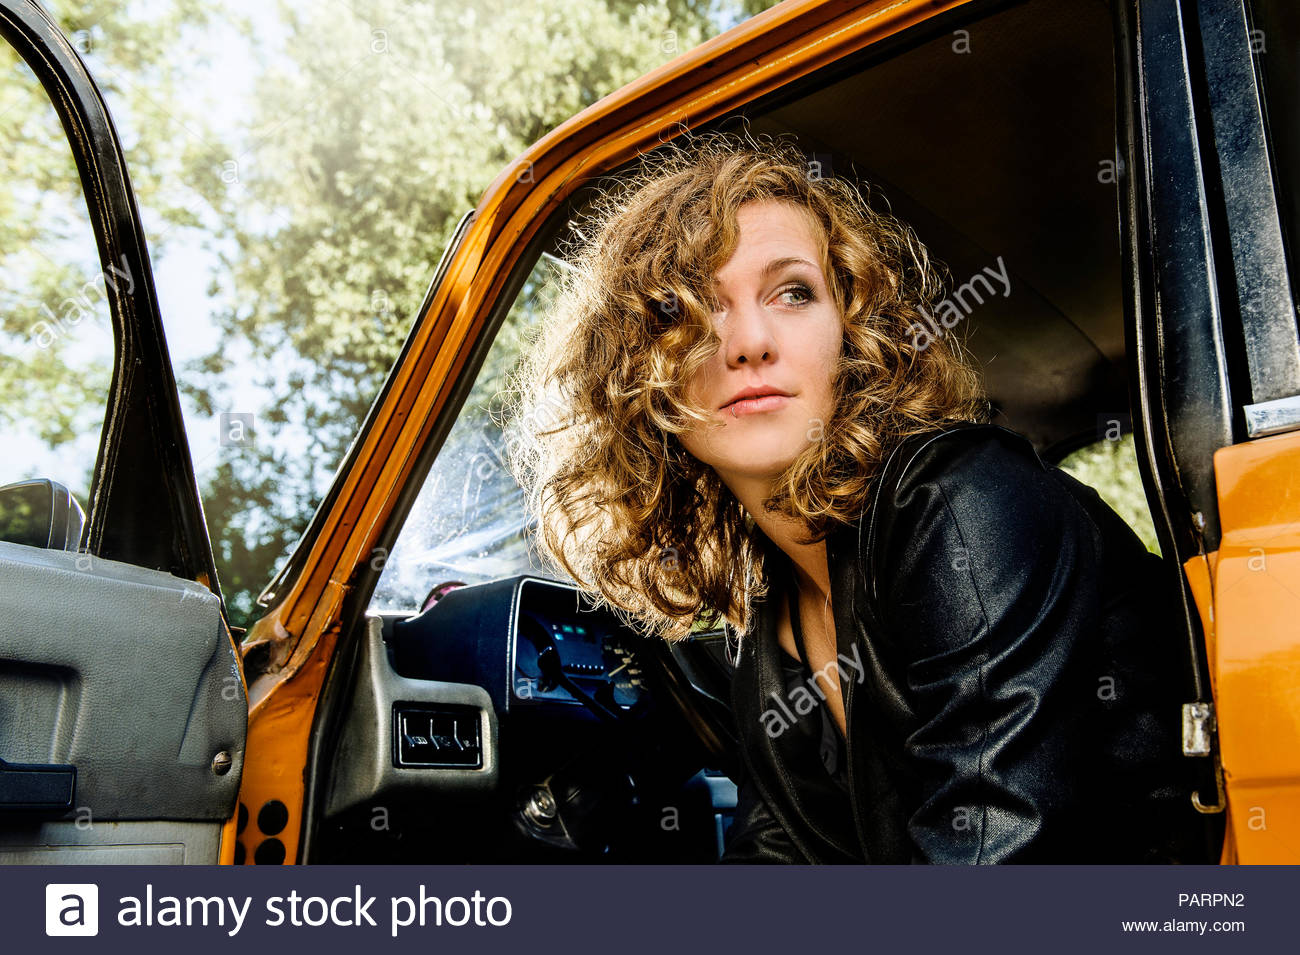 Portrait of a woman sitting in the car with the door opened - Stock Image